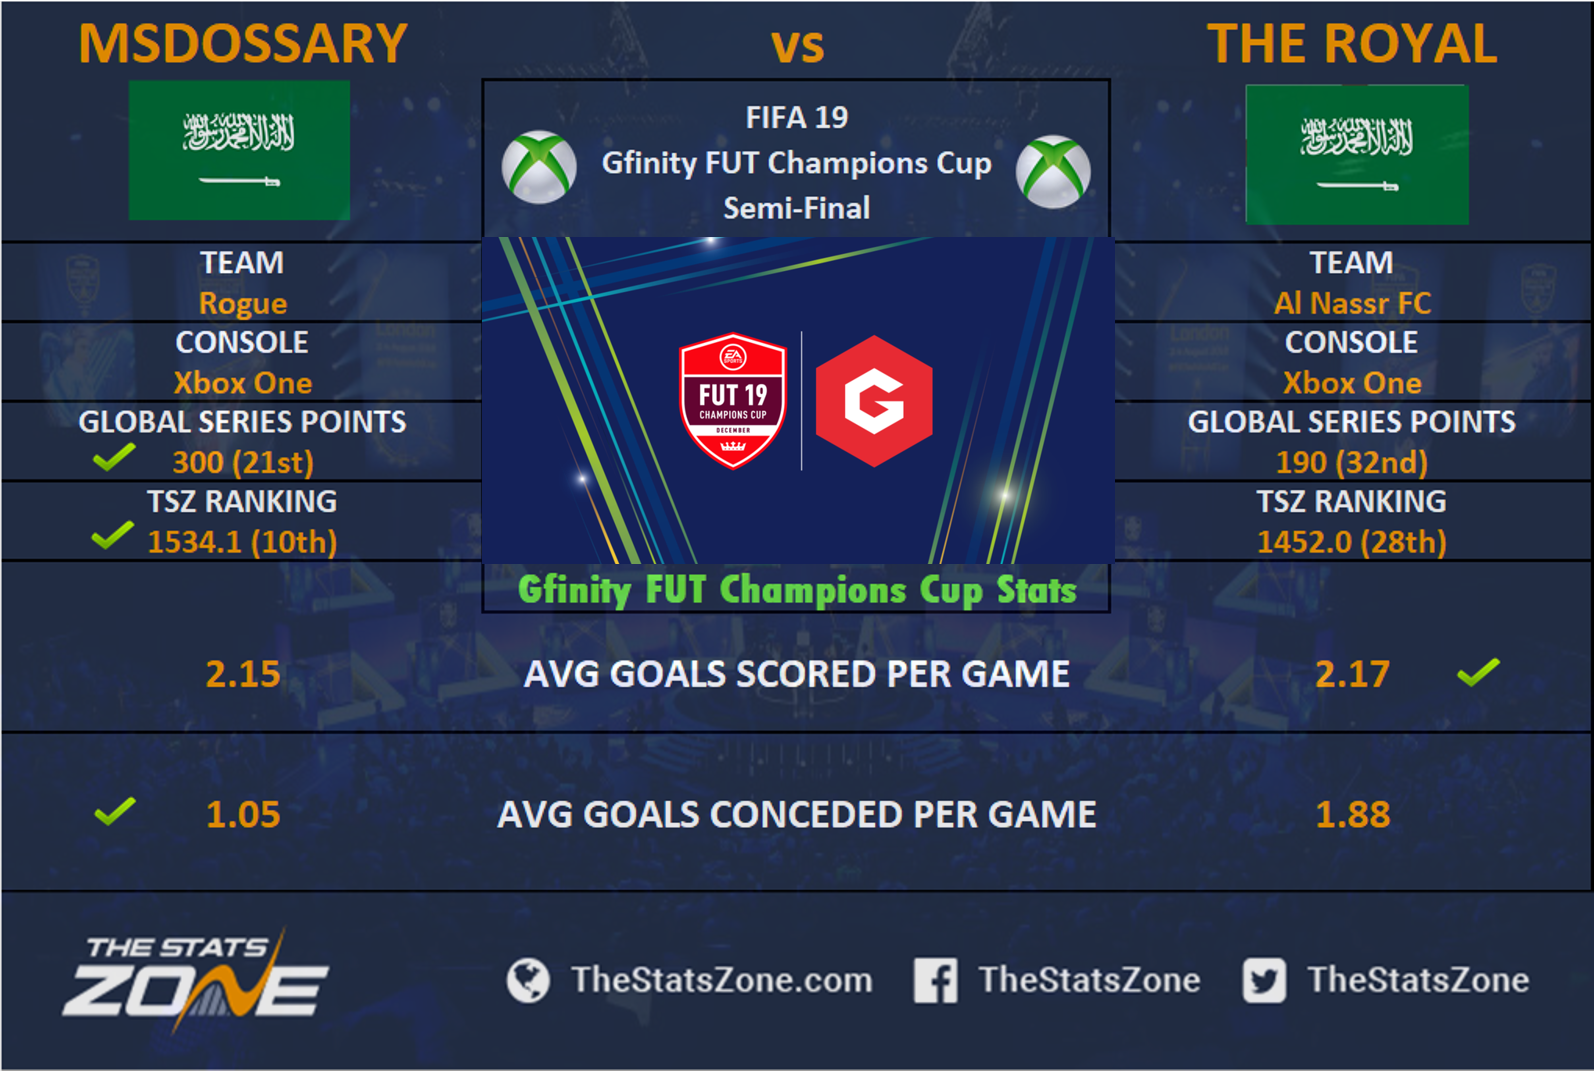 FIFA 19 – Gfinity FUT Champions Cup Sunday Preview - The Stats Zone